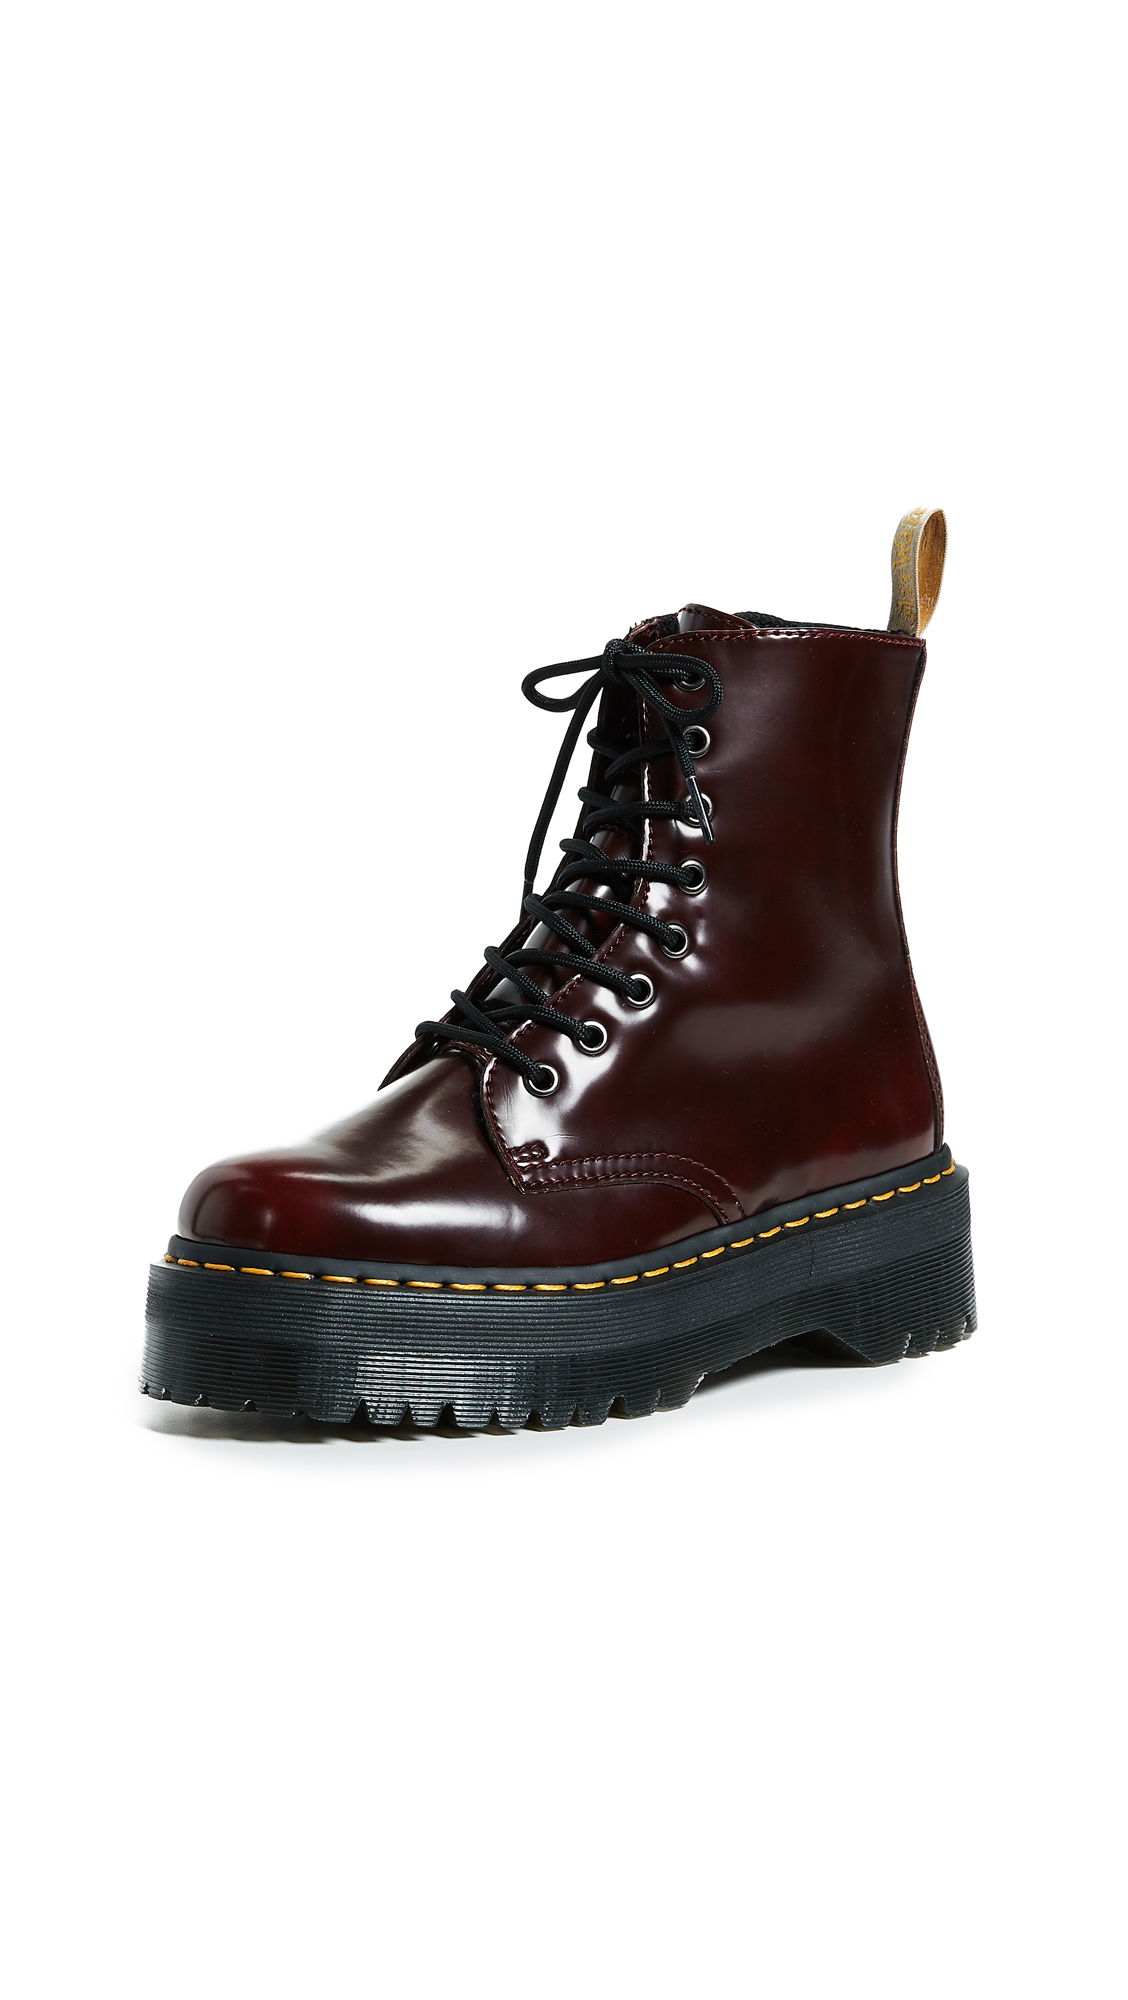 Dr. Martens V Jadon II 8 Eye Boots - Cherry Red